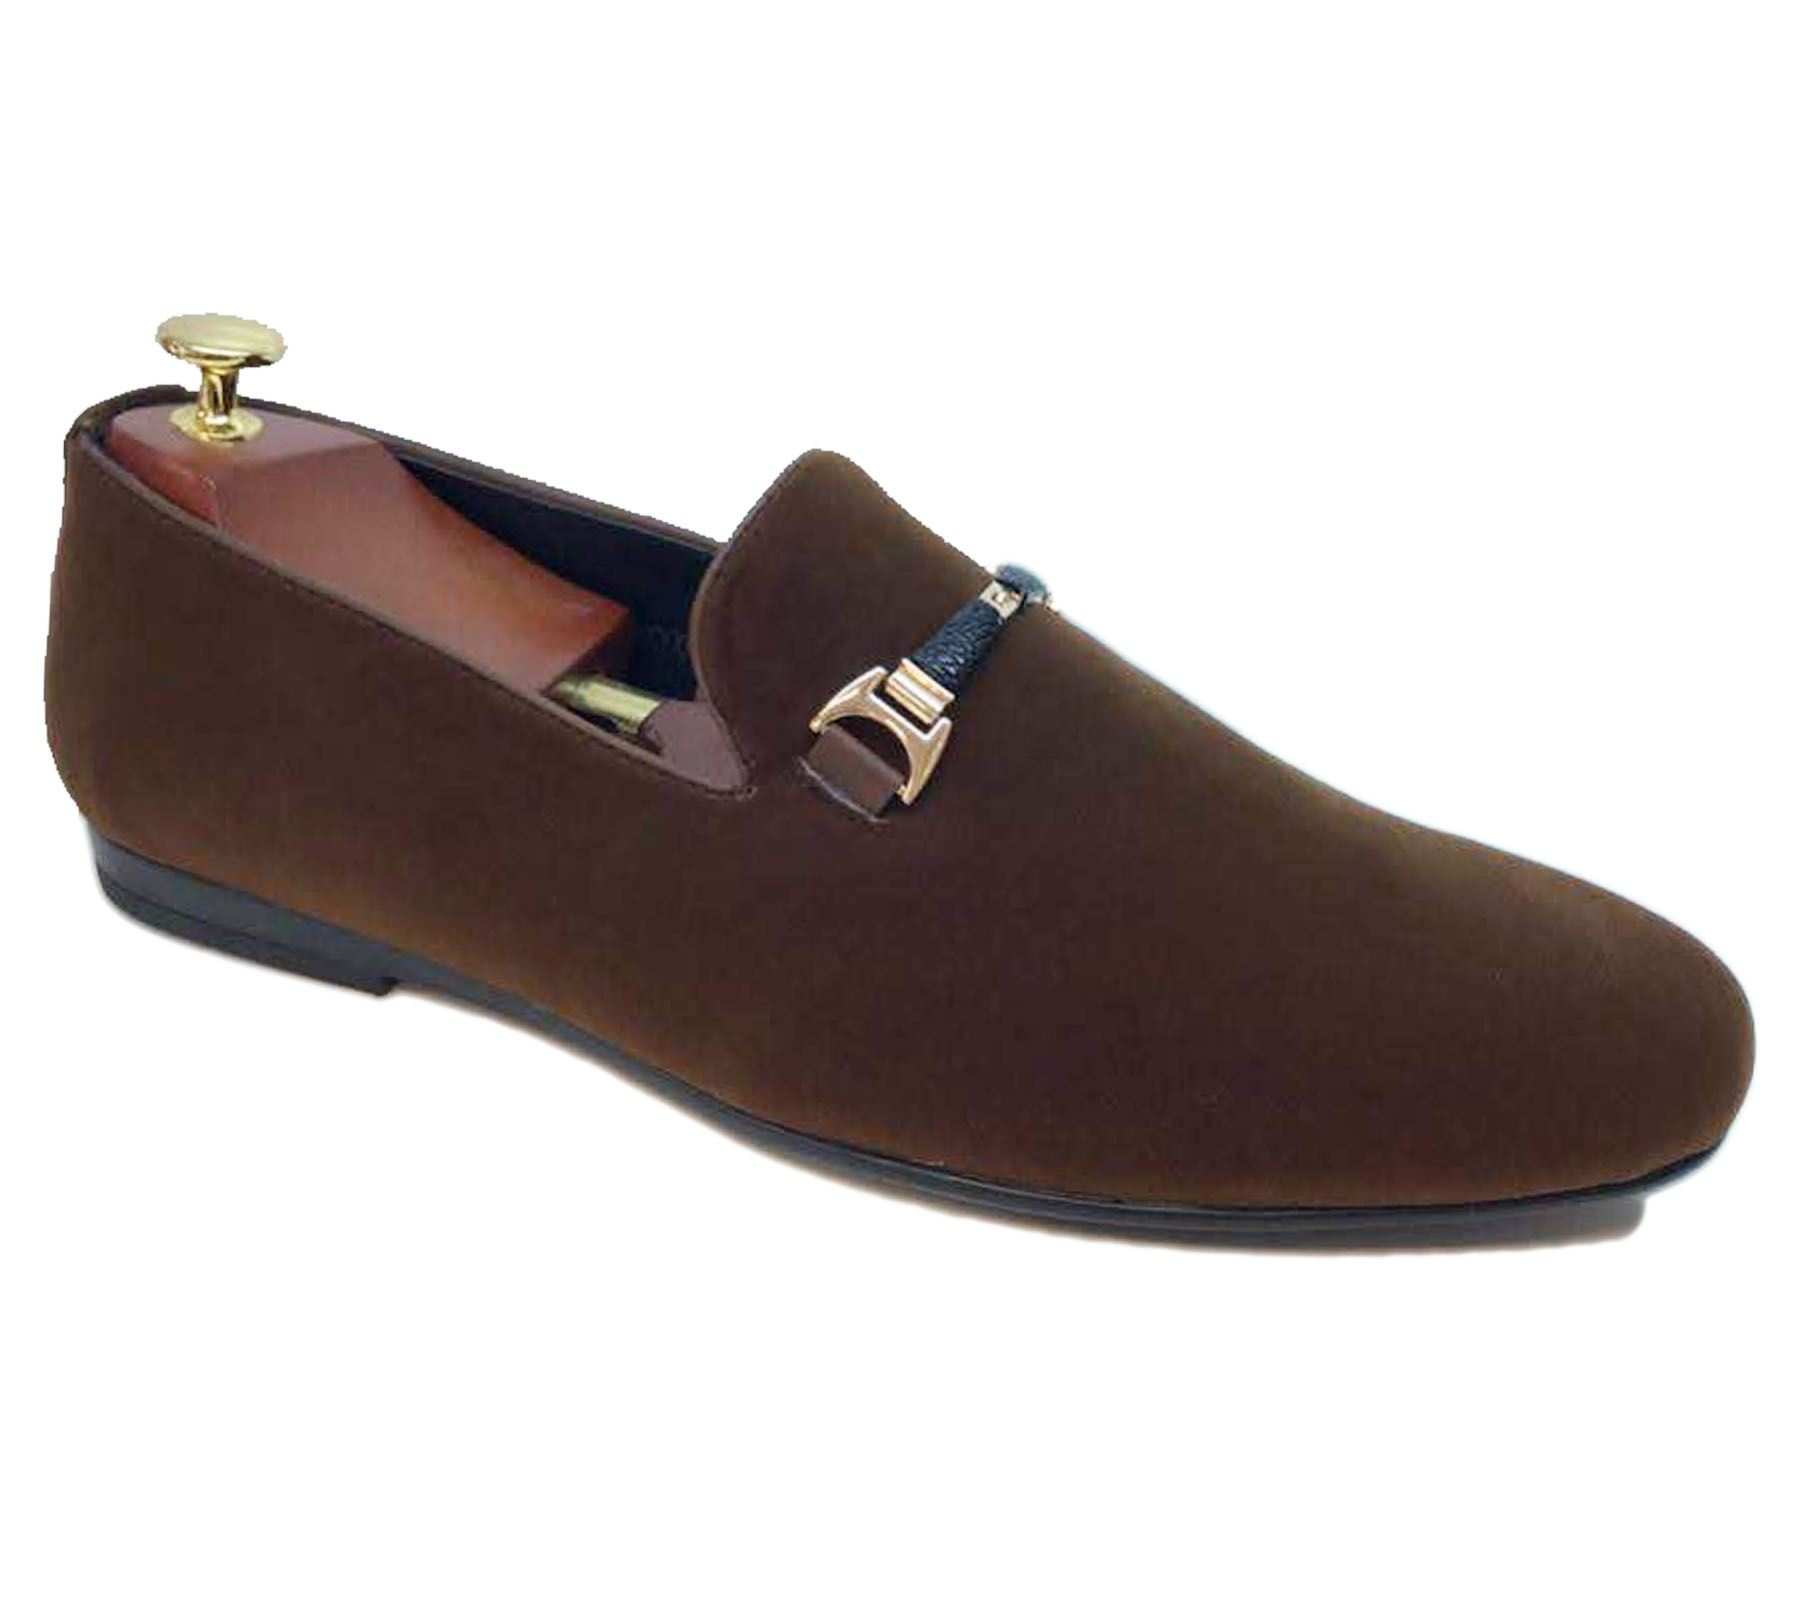 Mens-Loafers-Mocassin-Boat-Deck-Shoes-Flat-Slip-On-Driving-Casual-Smart-Pumps thumbnail 13